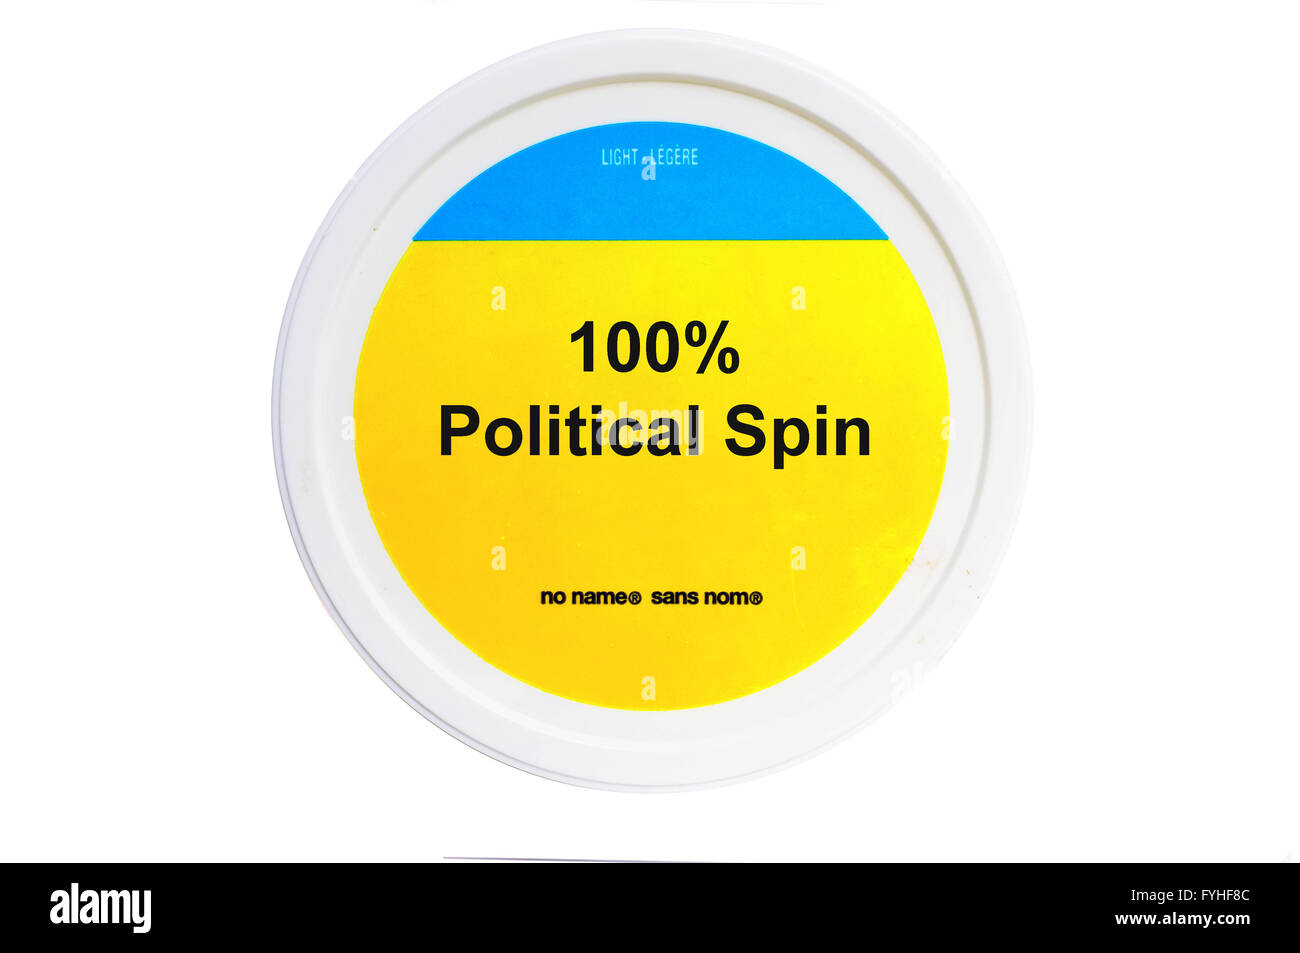 A tub with 100% Political Spin written on the label photographed against a white background. - Stock Image